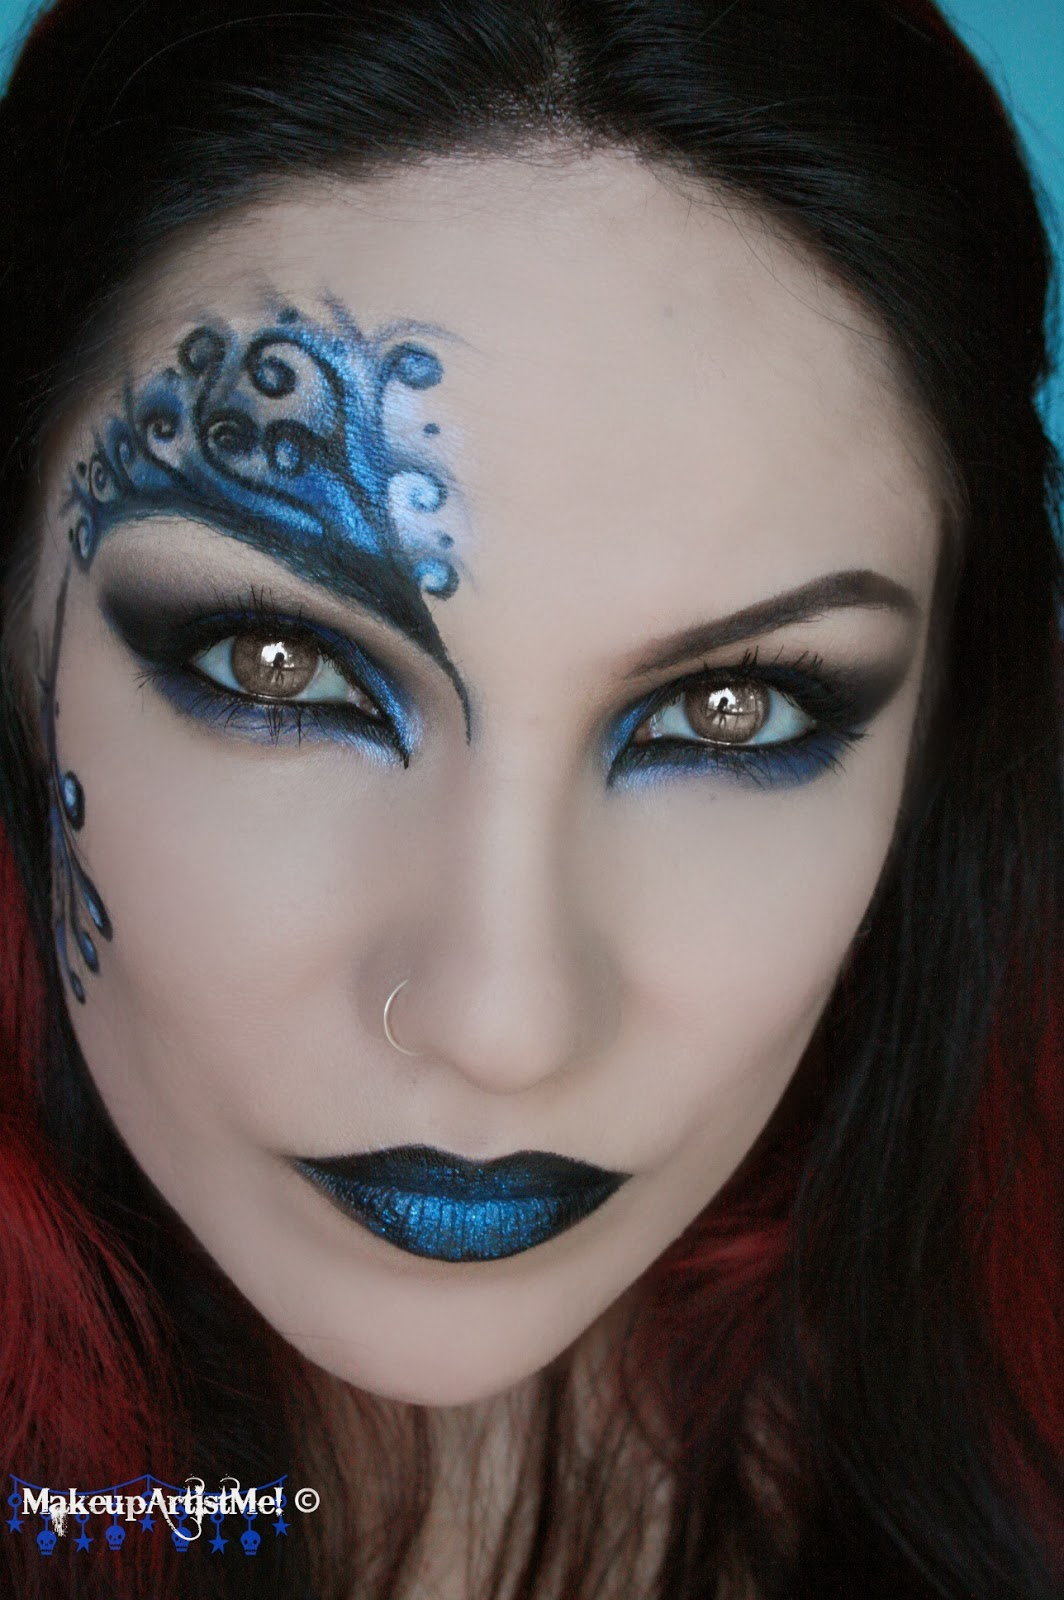 Make up Artist Me!: Blue Secret blue masquerade makeup - Makeup Mask Ideas